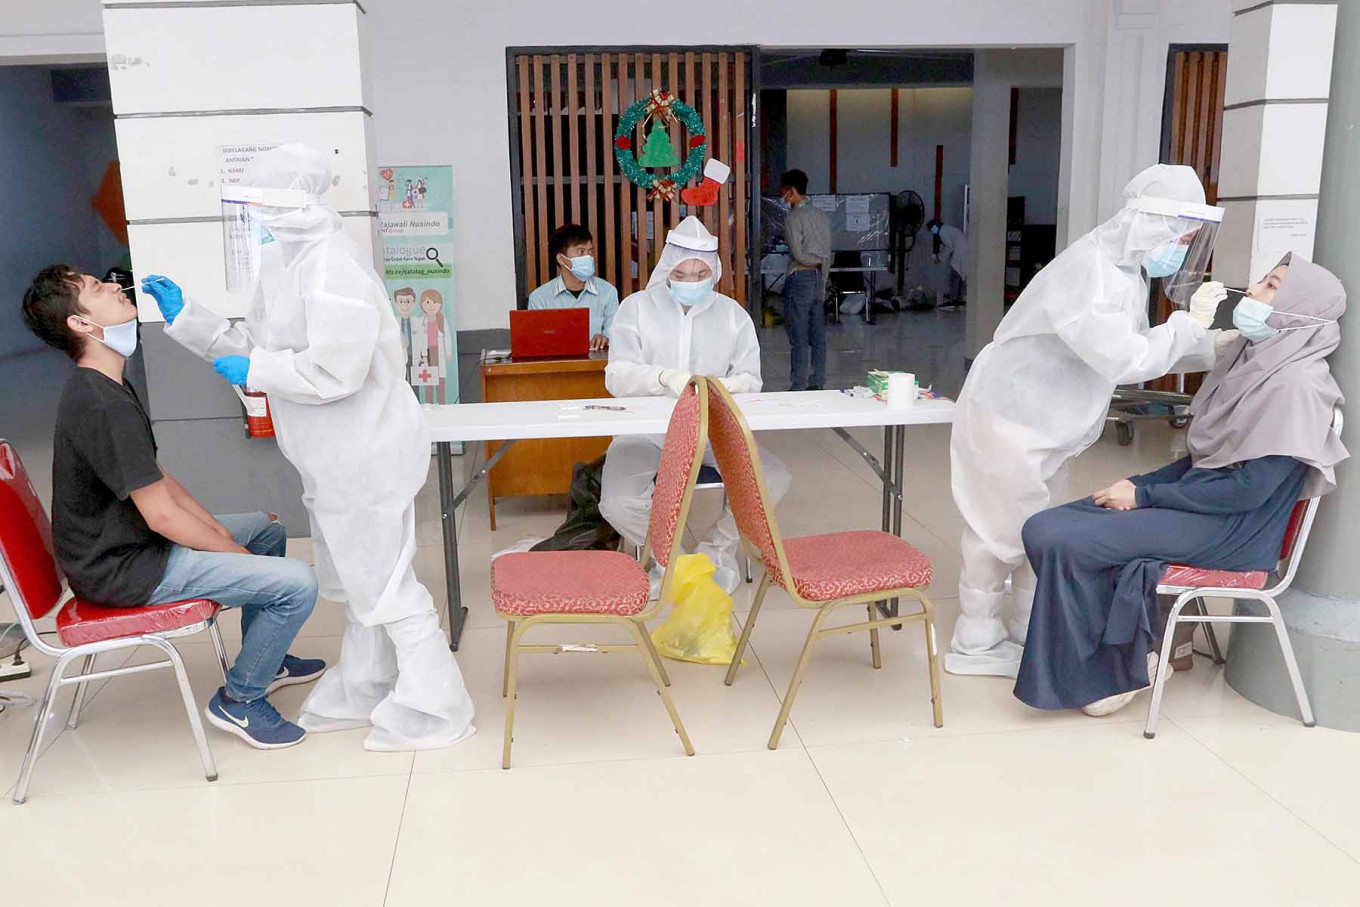 More people in Indonesia go out amid pandemic: Apple, Google studies